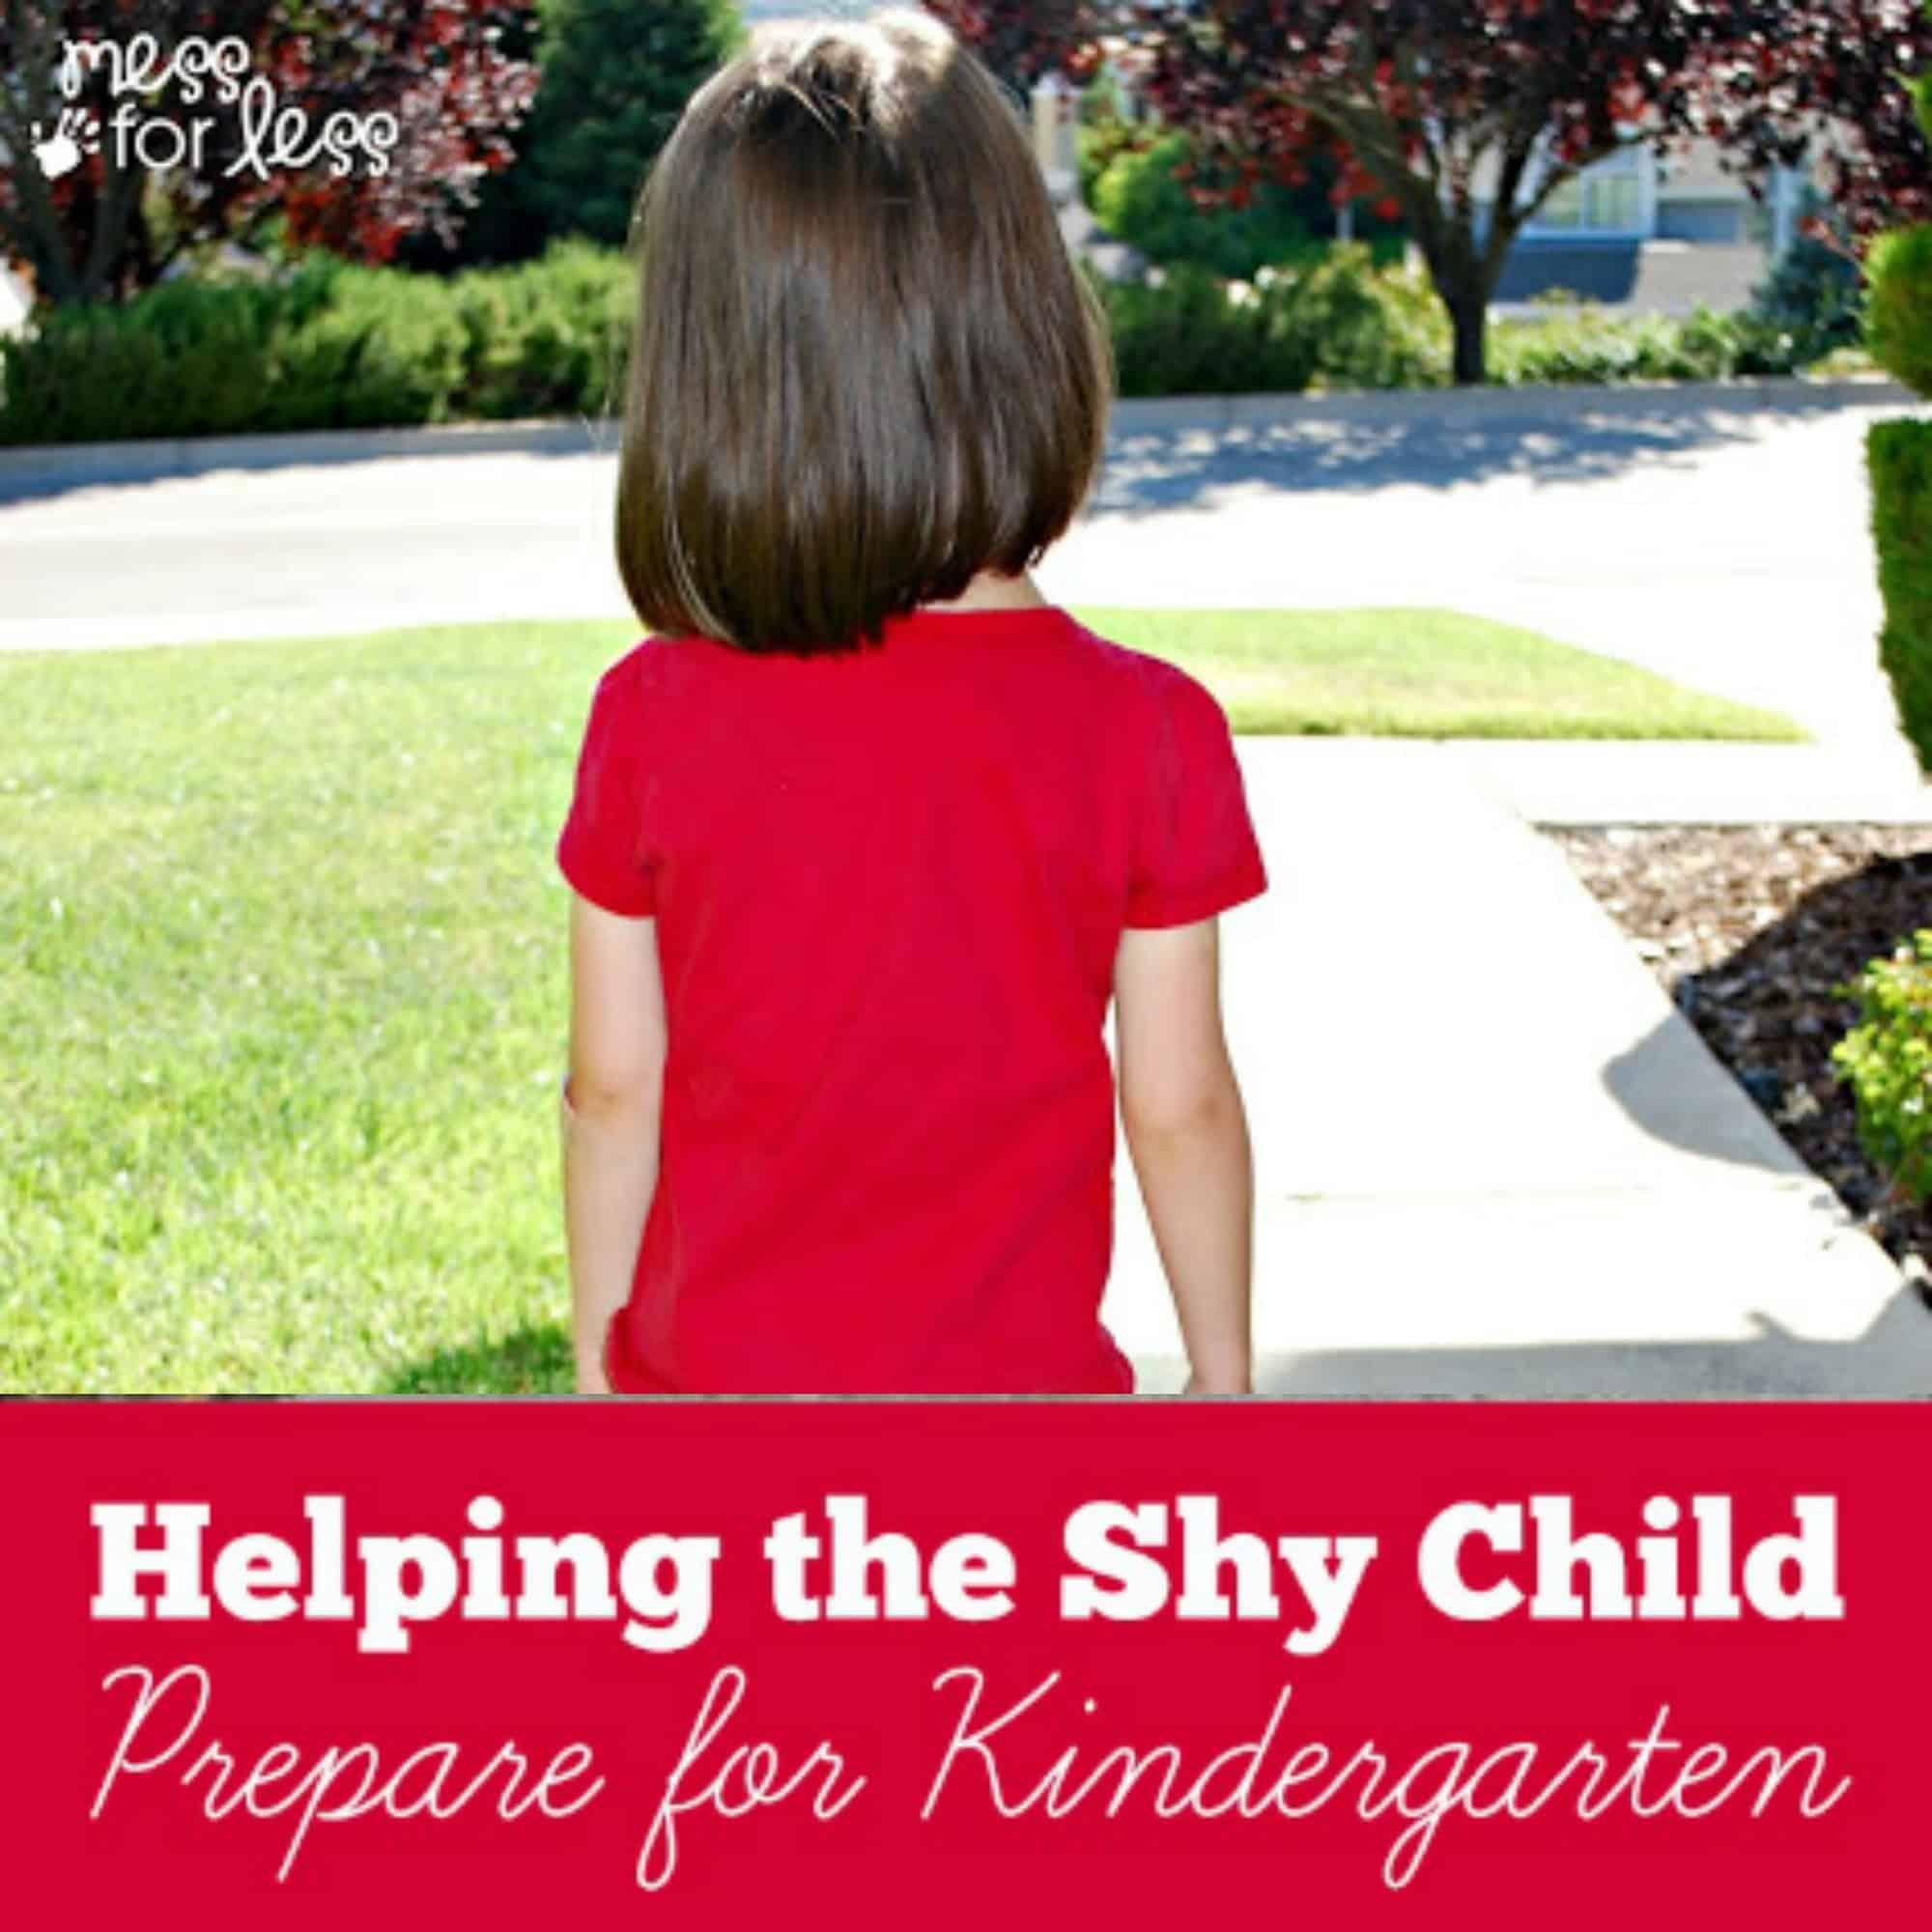 Helping the Shy Child Prepare for Kindergarten